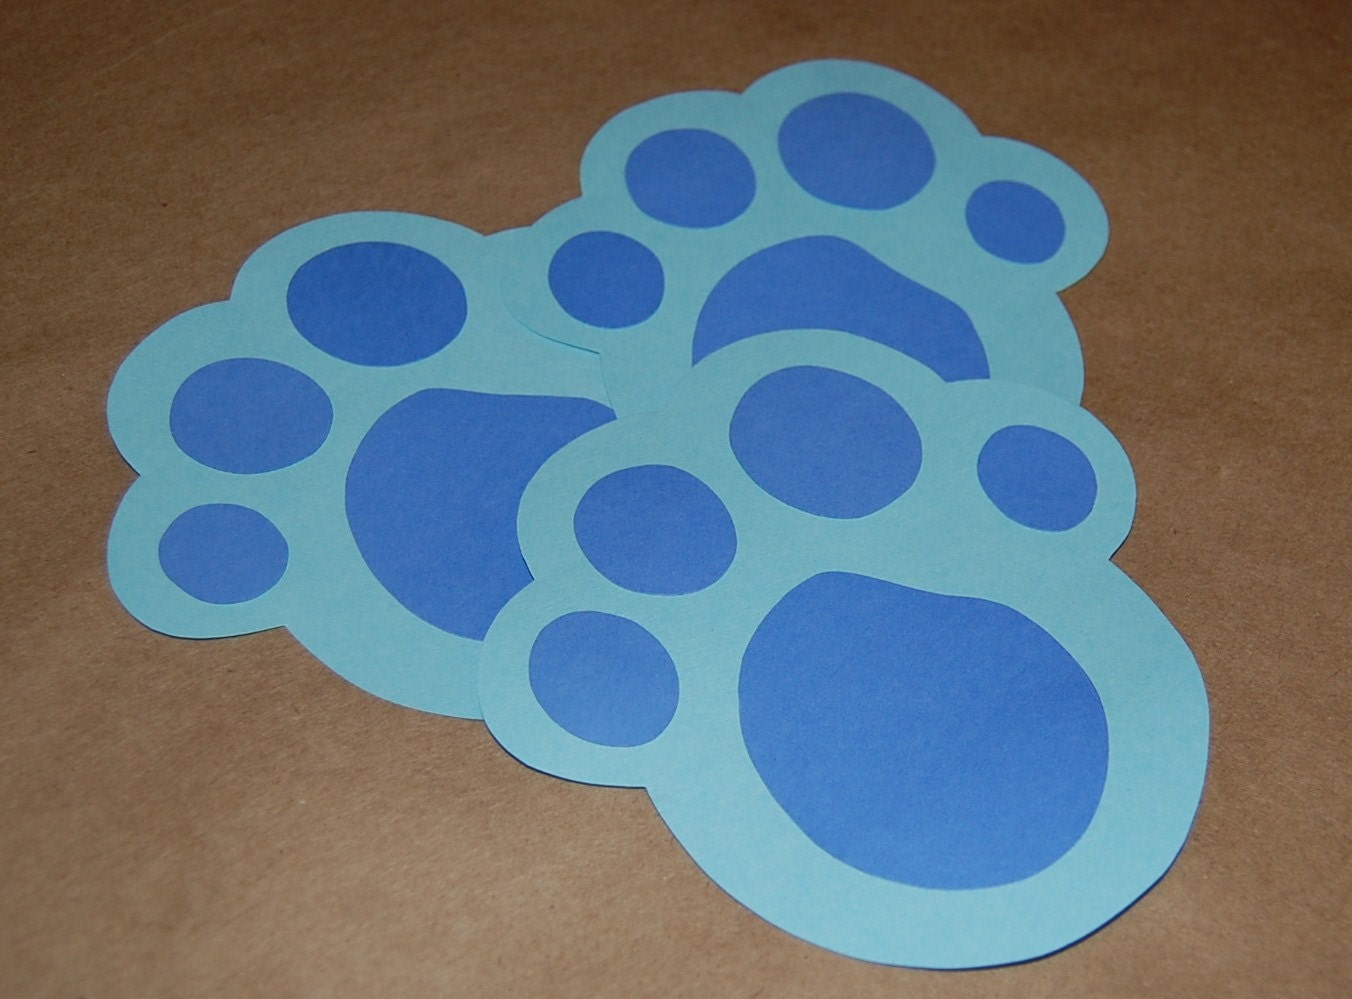 Blue's Clues Inspired Paw Print Game with Handy Dandy